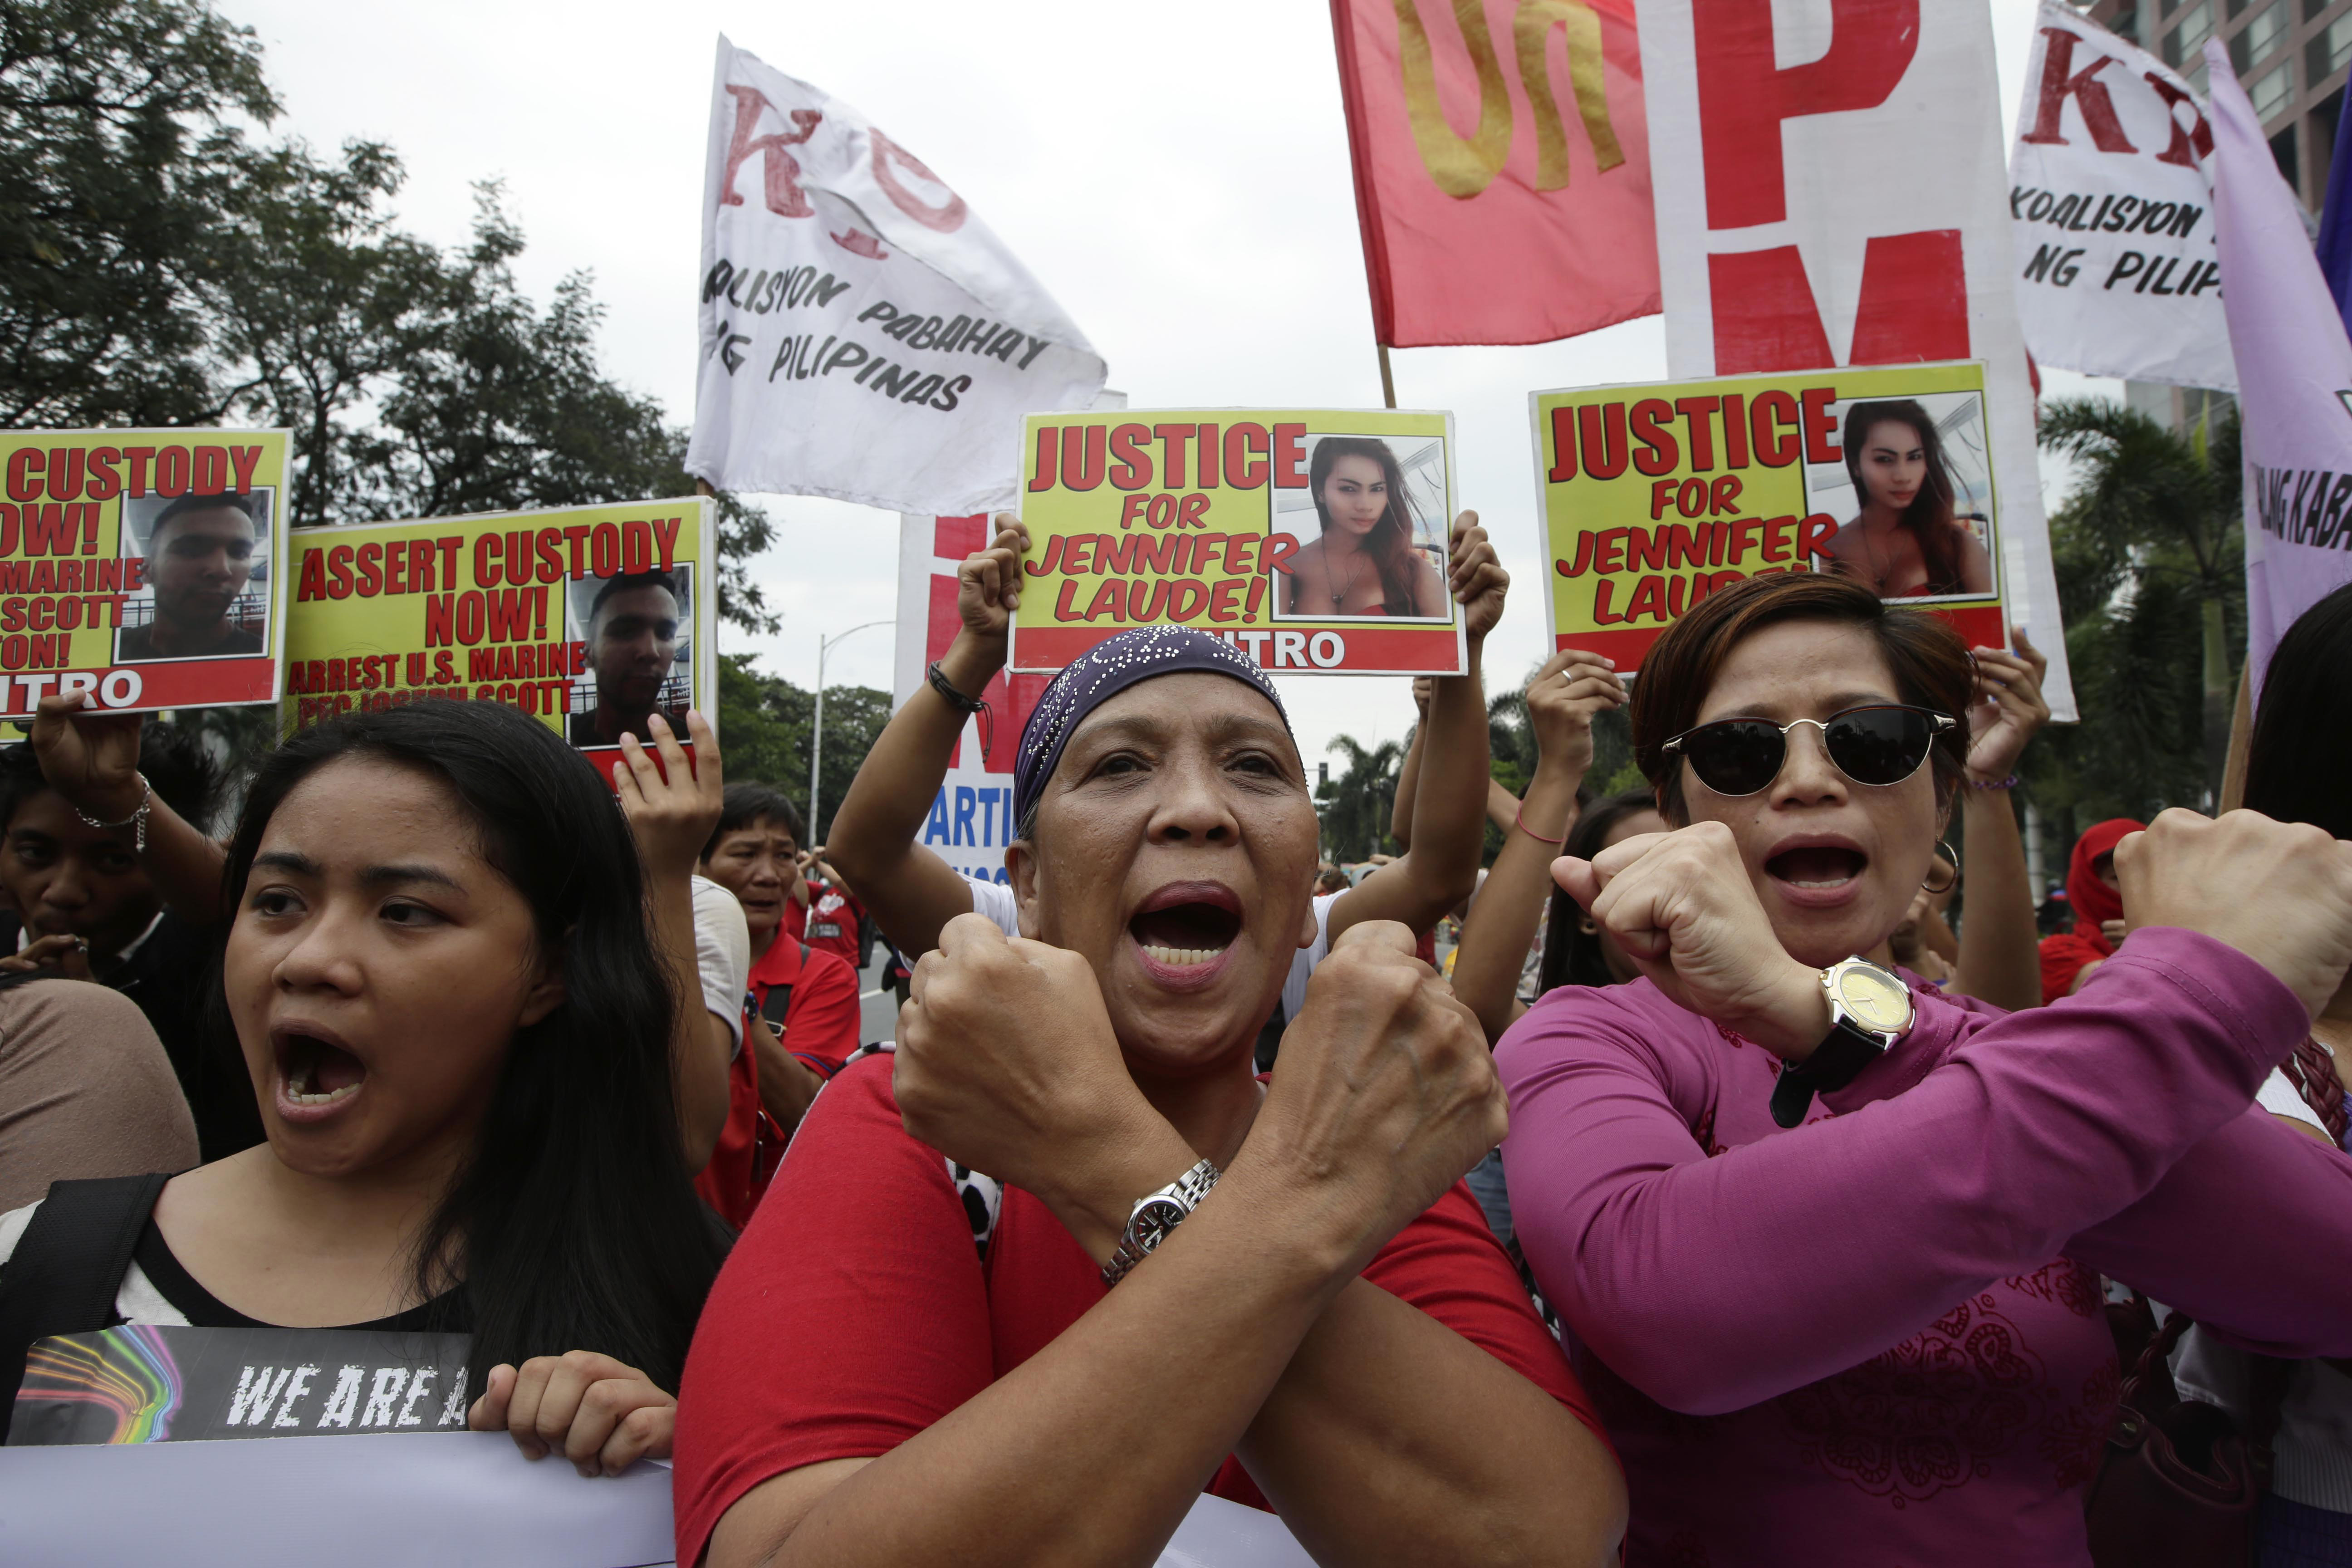 Protesters make cross signs as they shout slogans during a rally outside the U.S. Embassy in Manila, Philippines, Nov. 24, 2014 to demand justice for the Oct. 11 killing of Filipino transgender Jennifer Laude at the former US naval base of Subic.